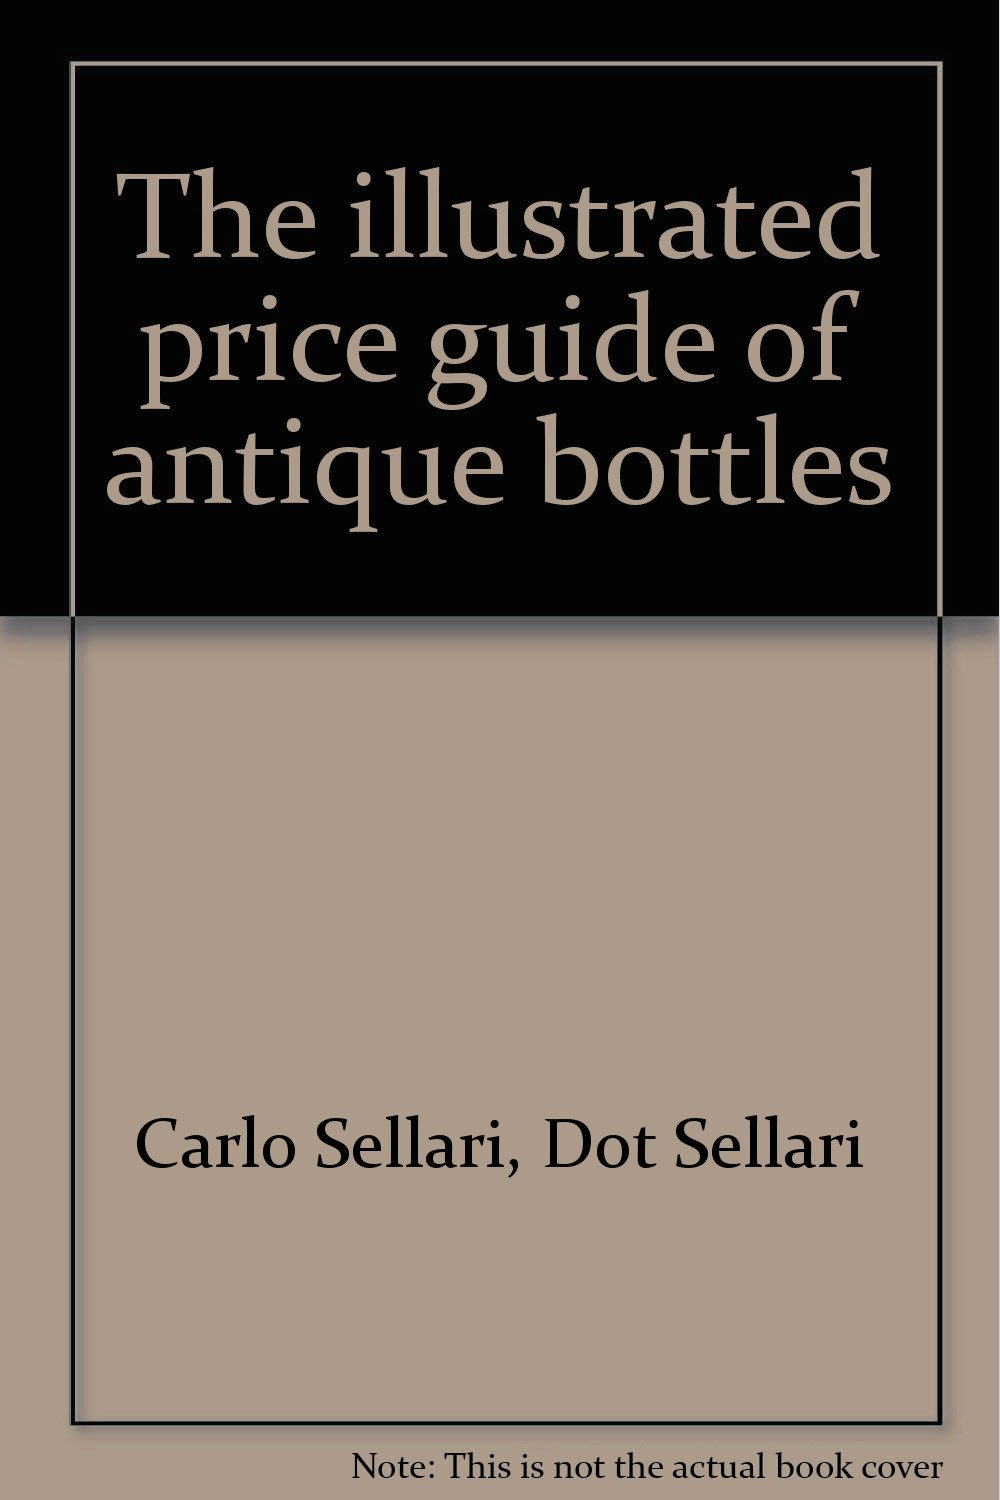 The illustrated price guide of antique bottles